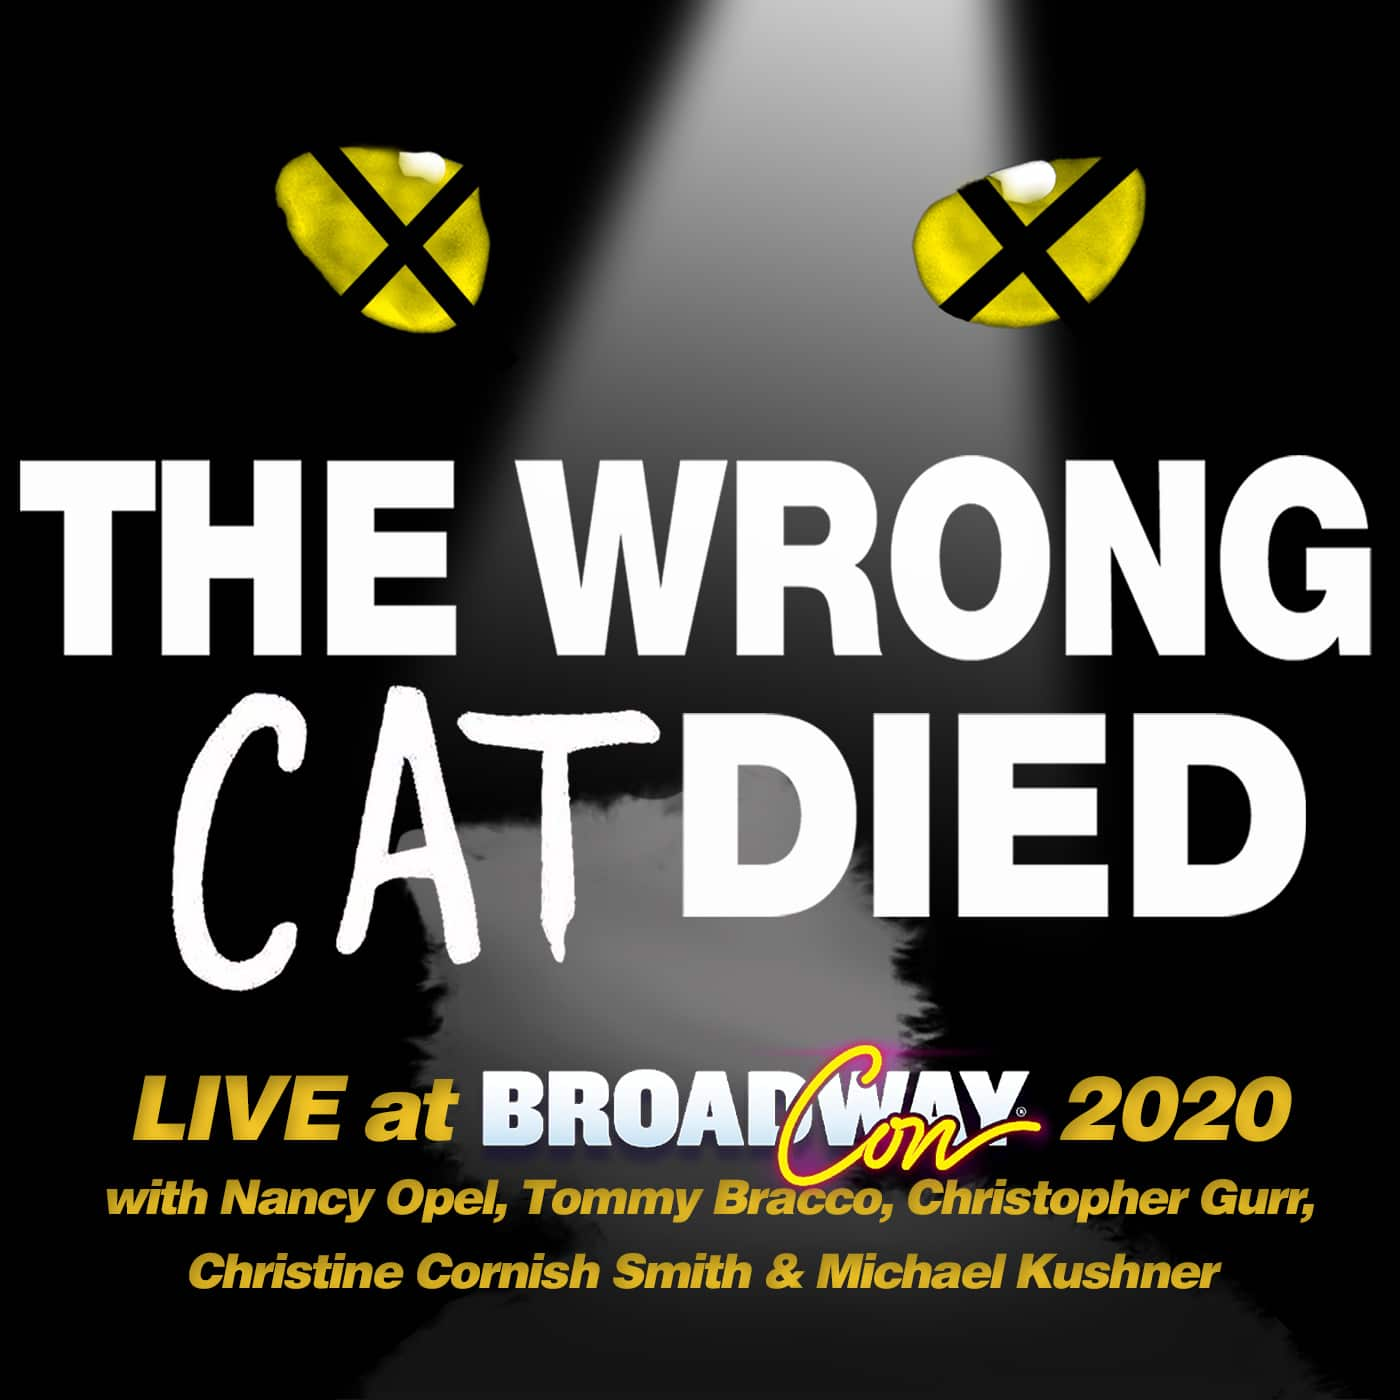 LIVE: Debating CATS at BroadwayCon 2020 with Nancy Opel, Tommy Bracco, Christopher Gurr, Christine Cornish Smith, and Michael Kushner